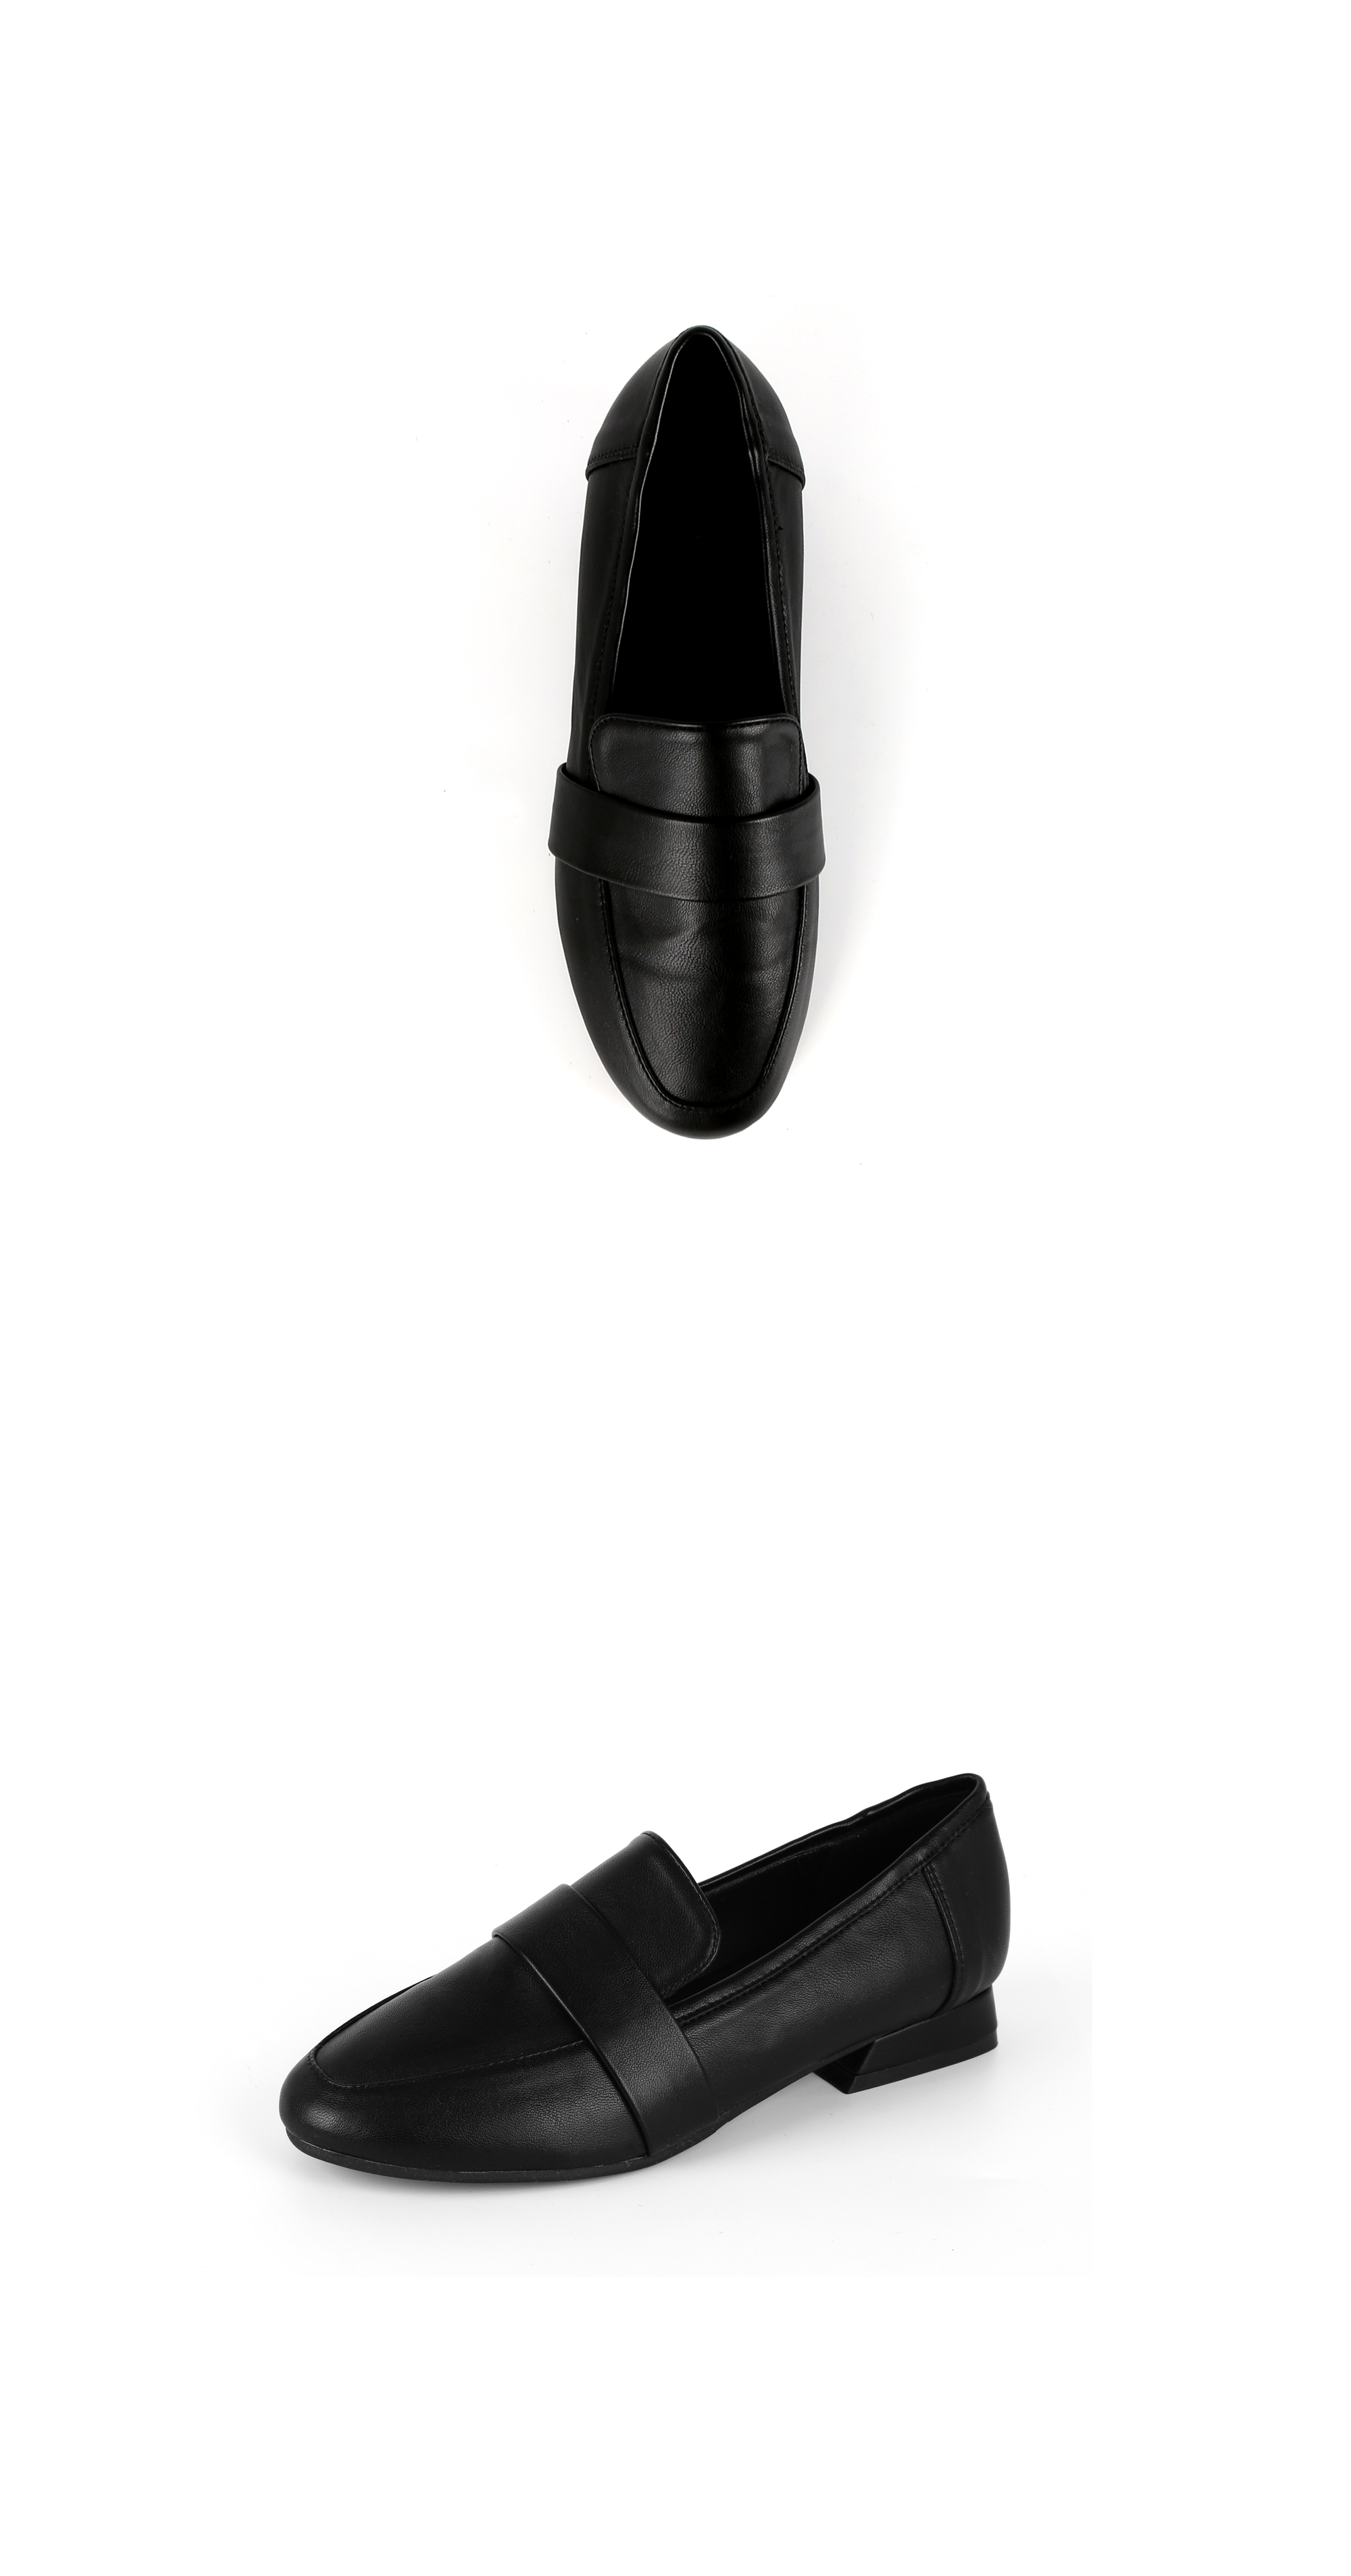 리플라(LI FLA) 19B501 black loafer